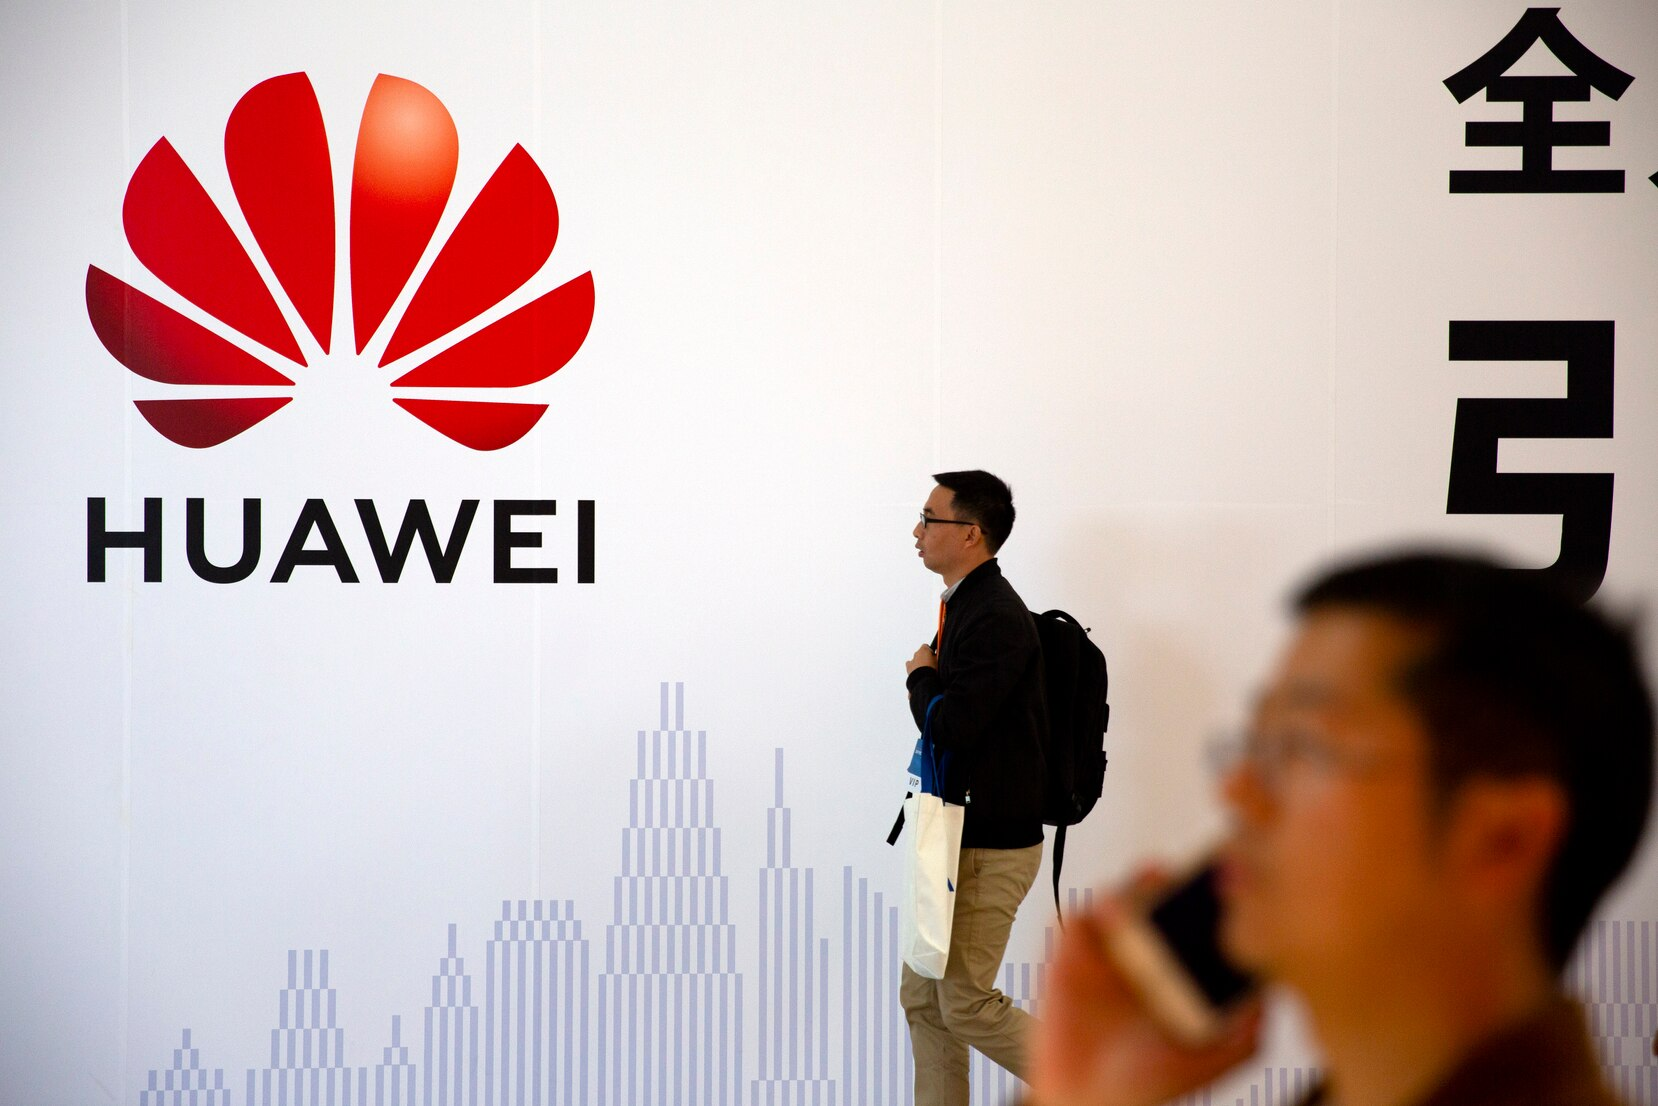 Huawei is starting to suffer as the Trump administration steps up efforts to slam the door on access to Western components and markets in a widening feud with Beijing over technology and security. (Mark Schiefelbein/AP/CP)